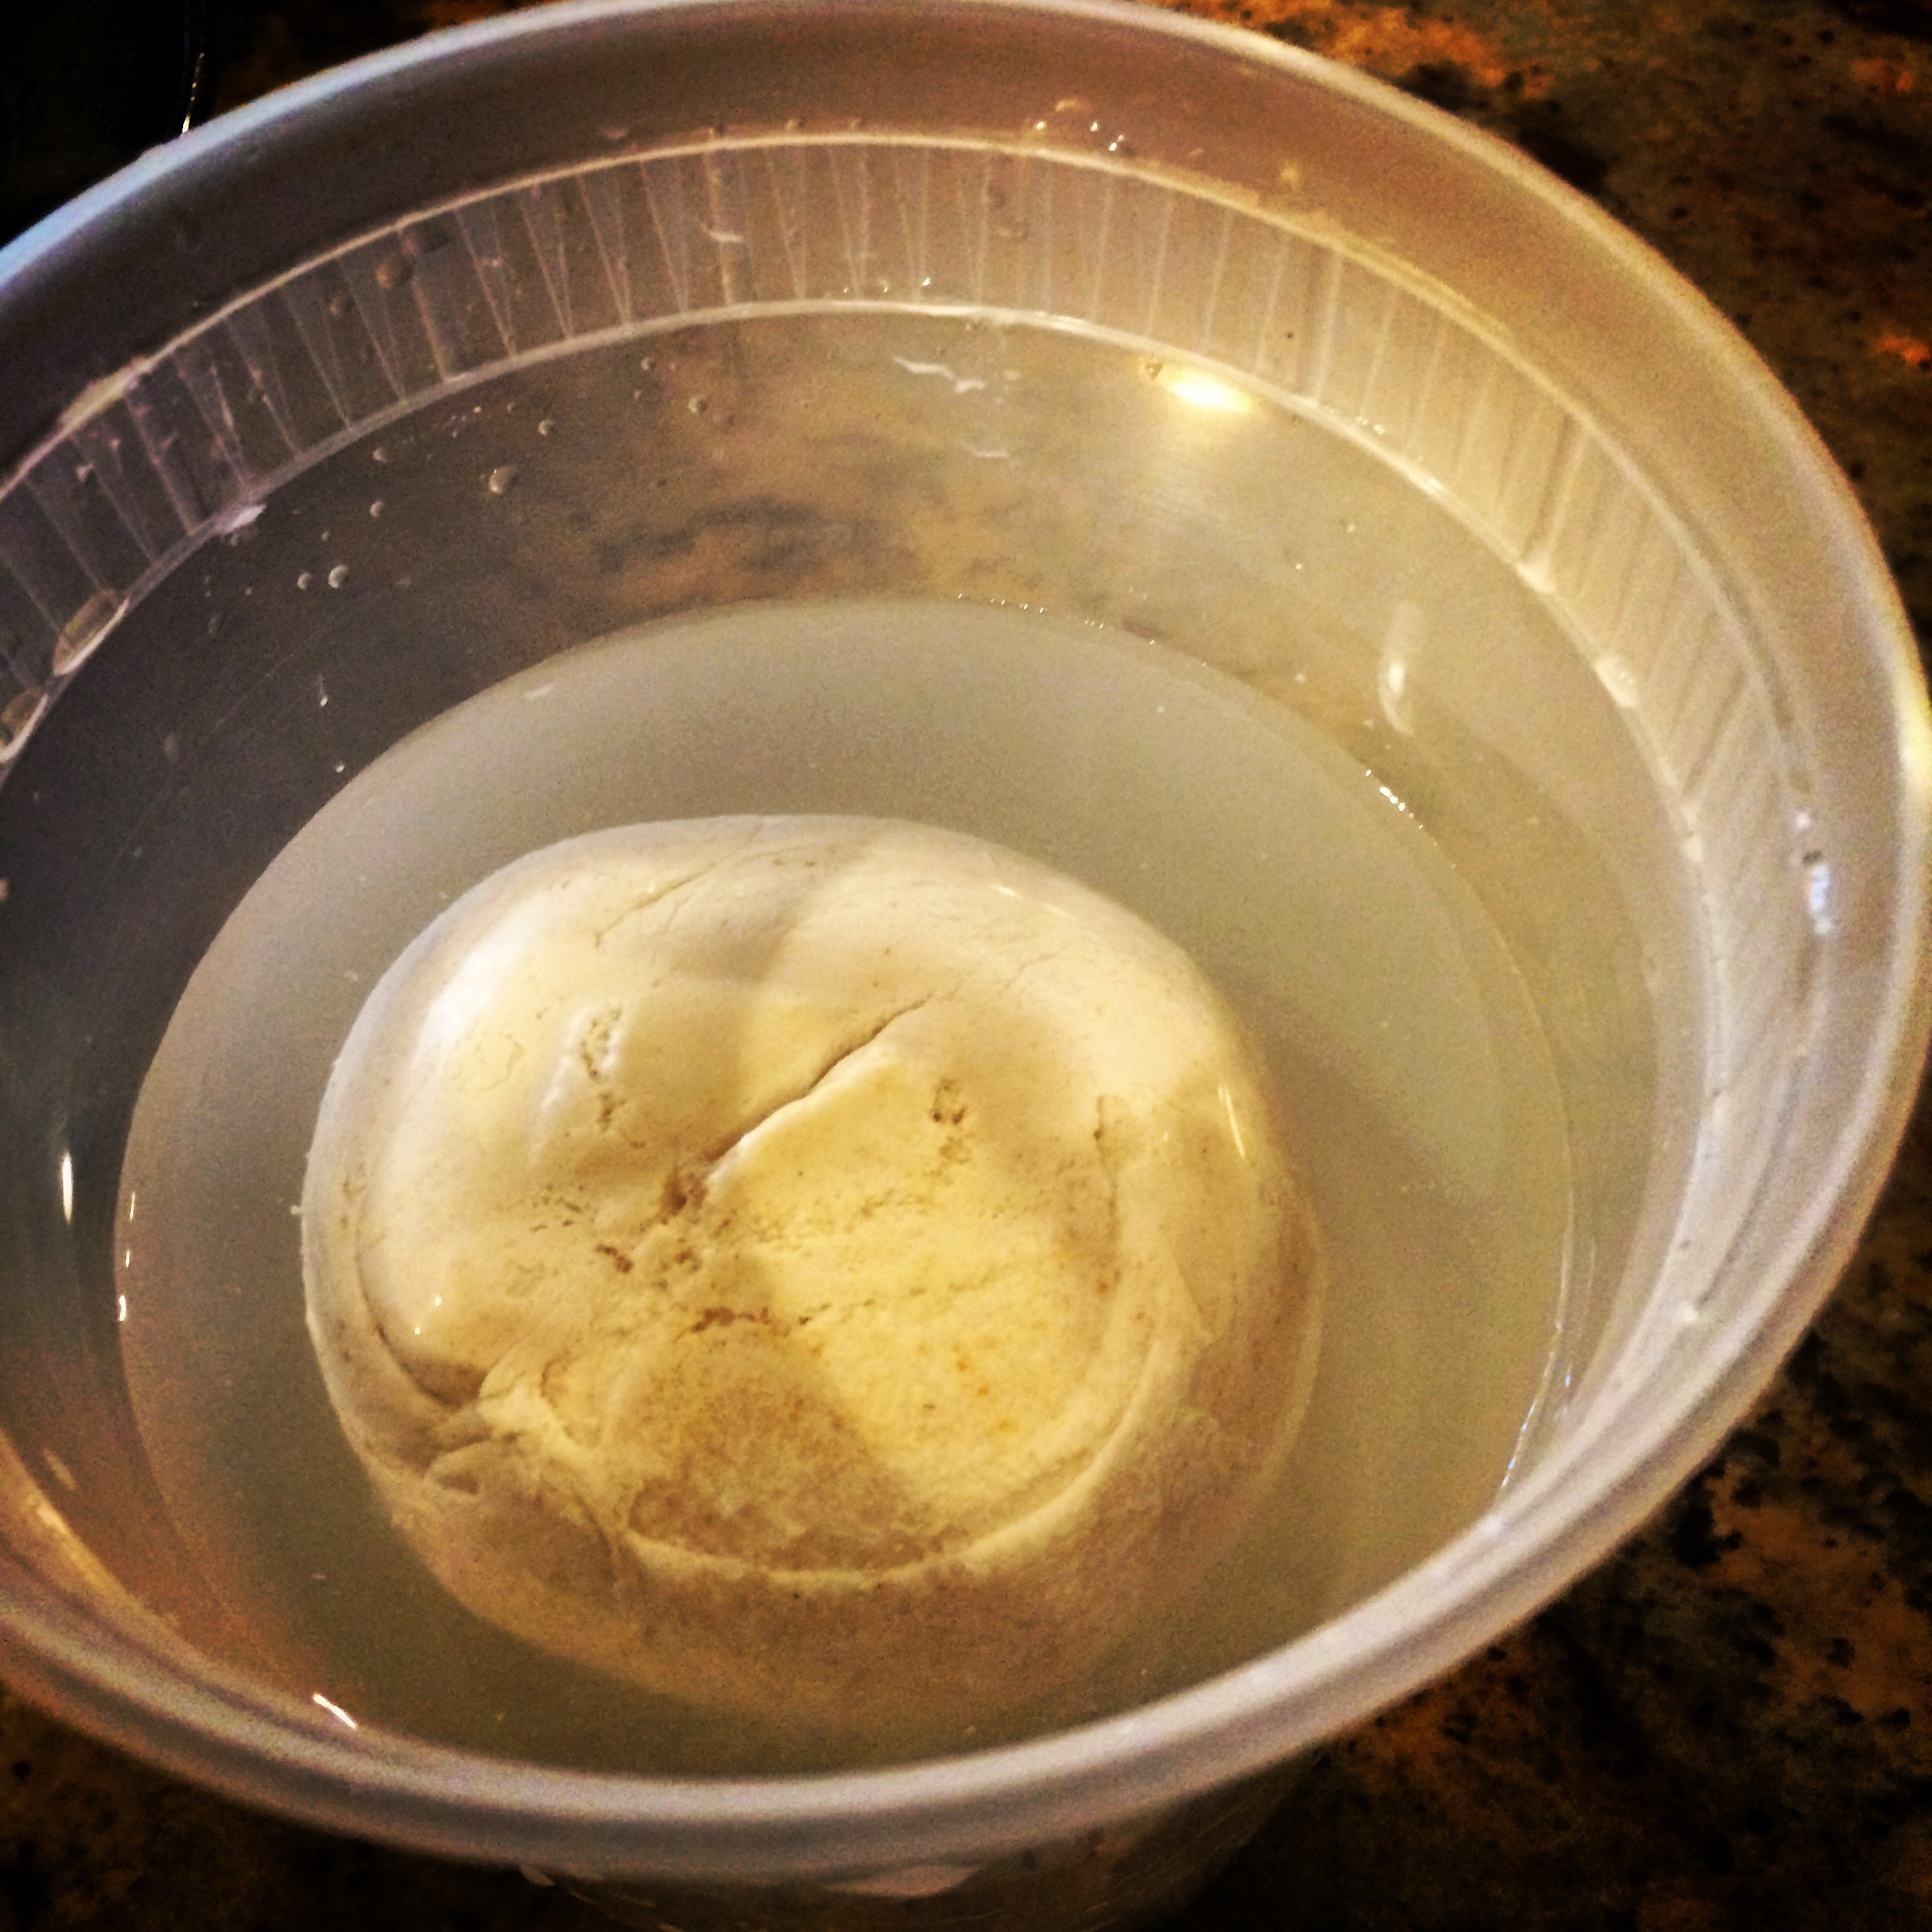 Fully risen sourdough will float in a container of water